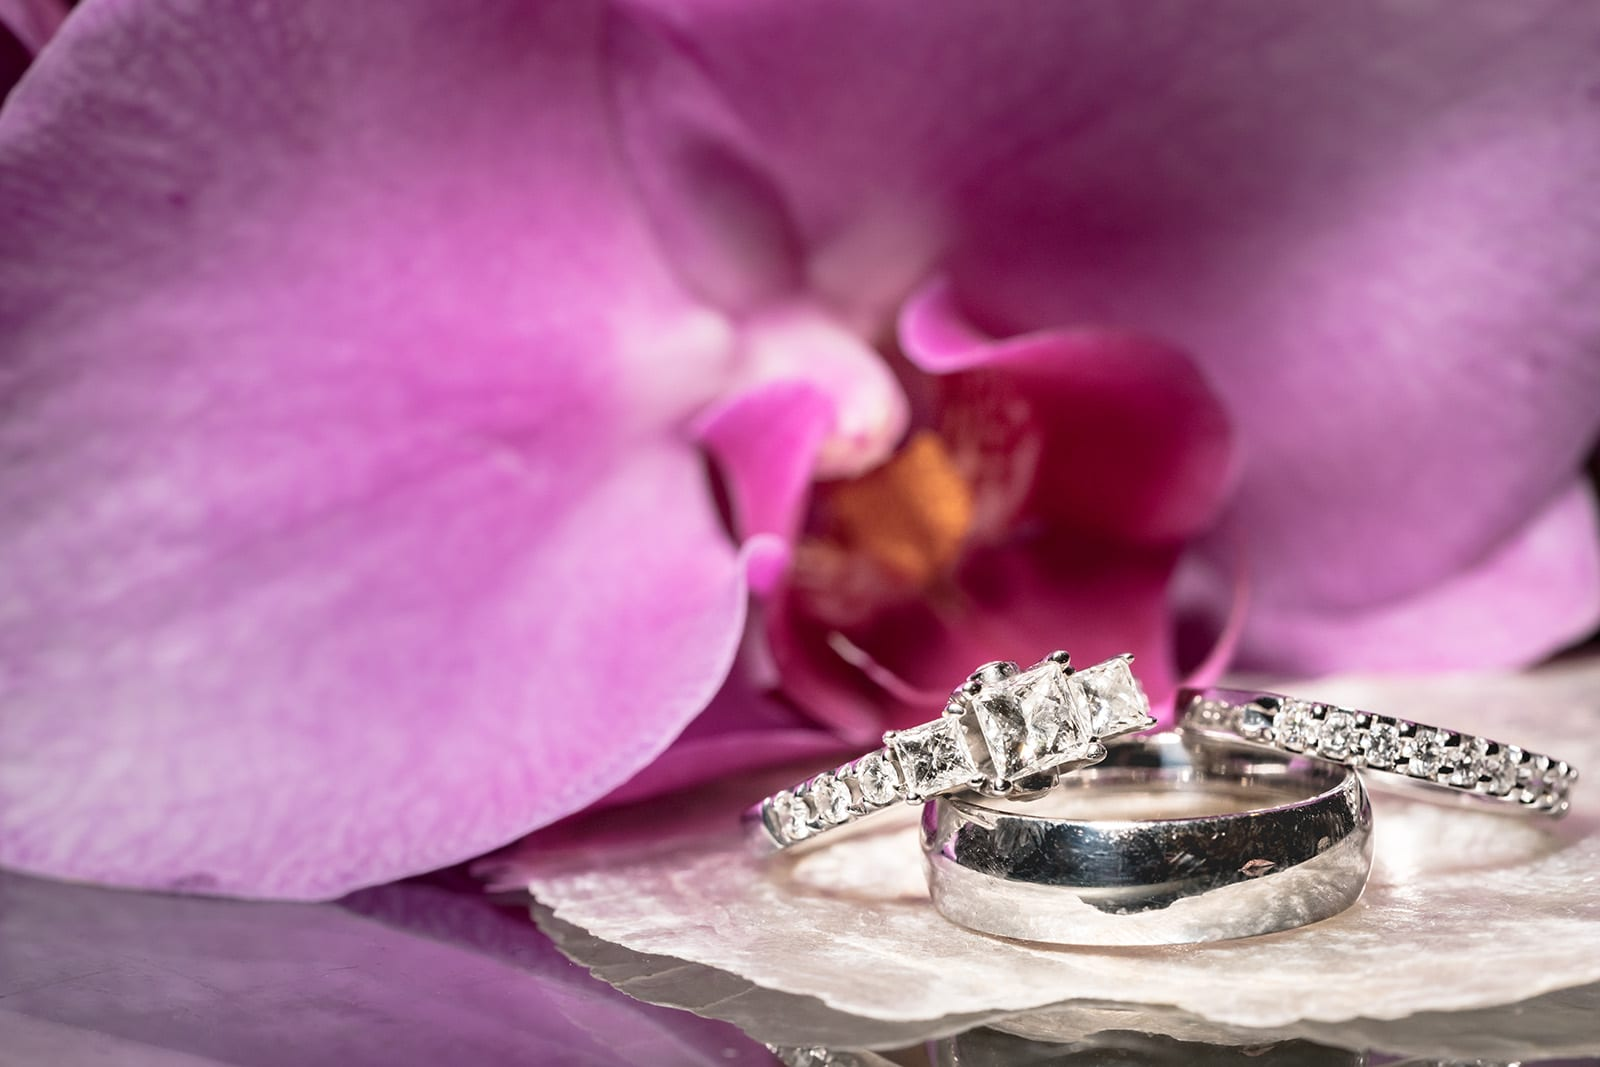 pink-orchid-fairmont-Hawaii-Wedding-Photographer-Ring-Details-Engagement-Ring-Off-camera-flash-macro-19.jpg